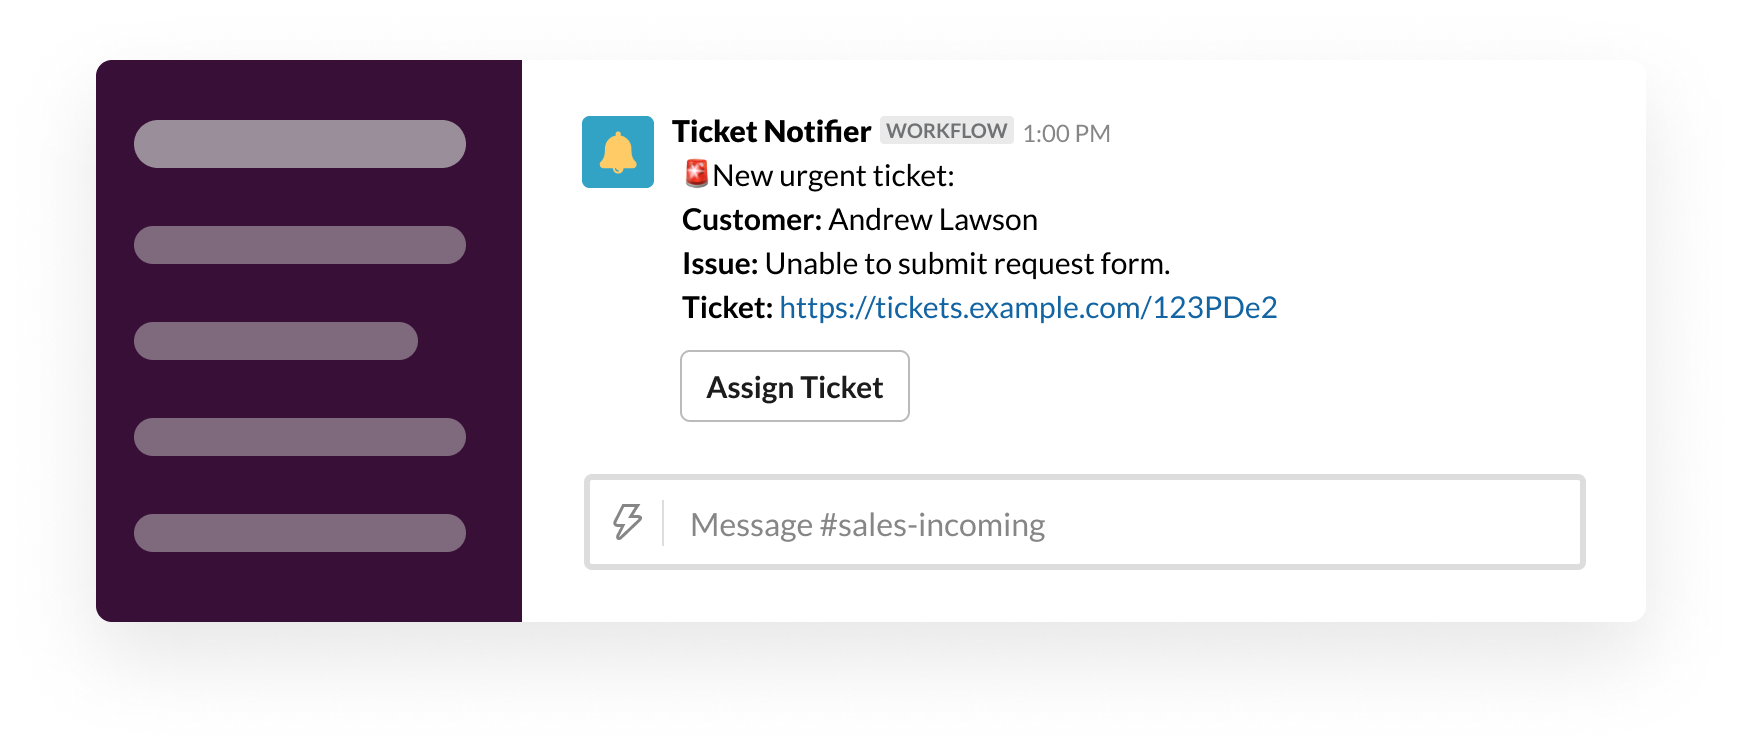 A webhook sends a ticket into Slack through Workflow Builder